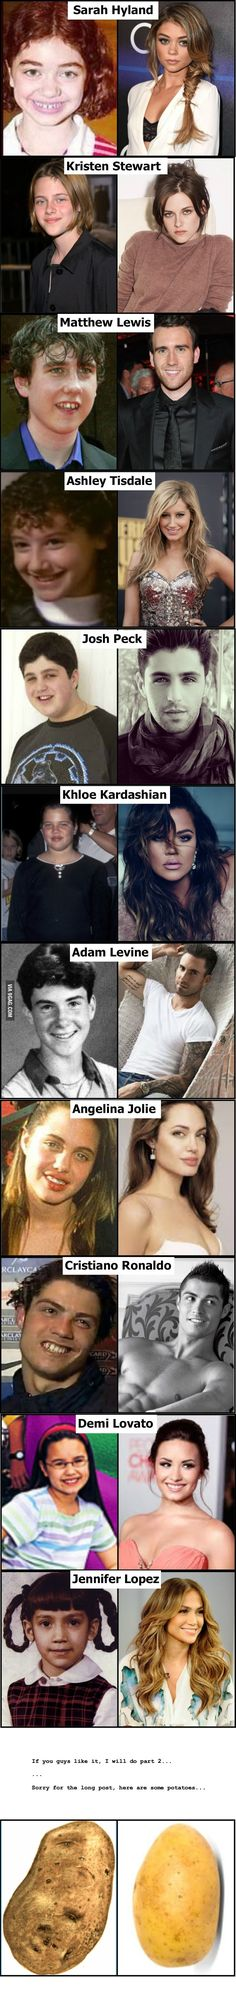 Celebrities then and now... - 9GAG